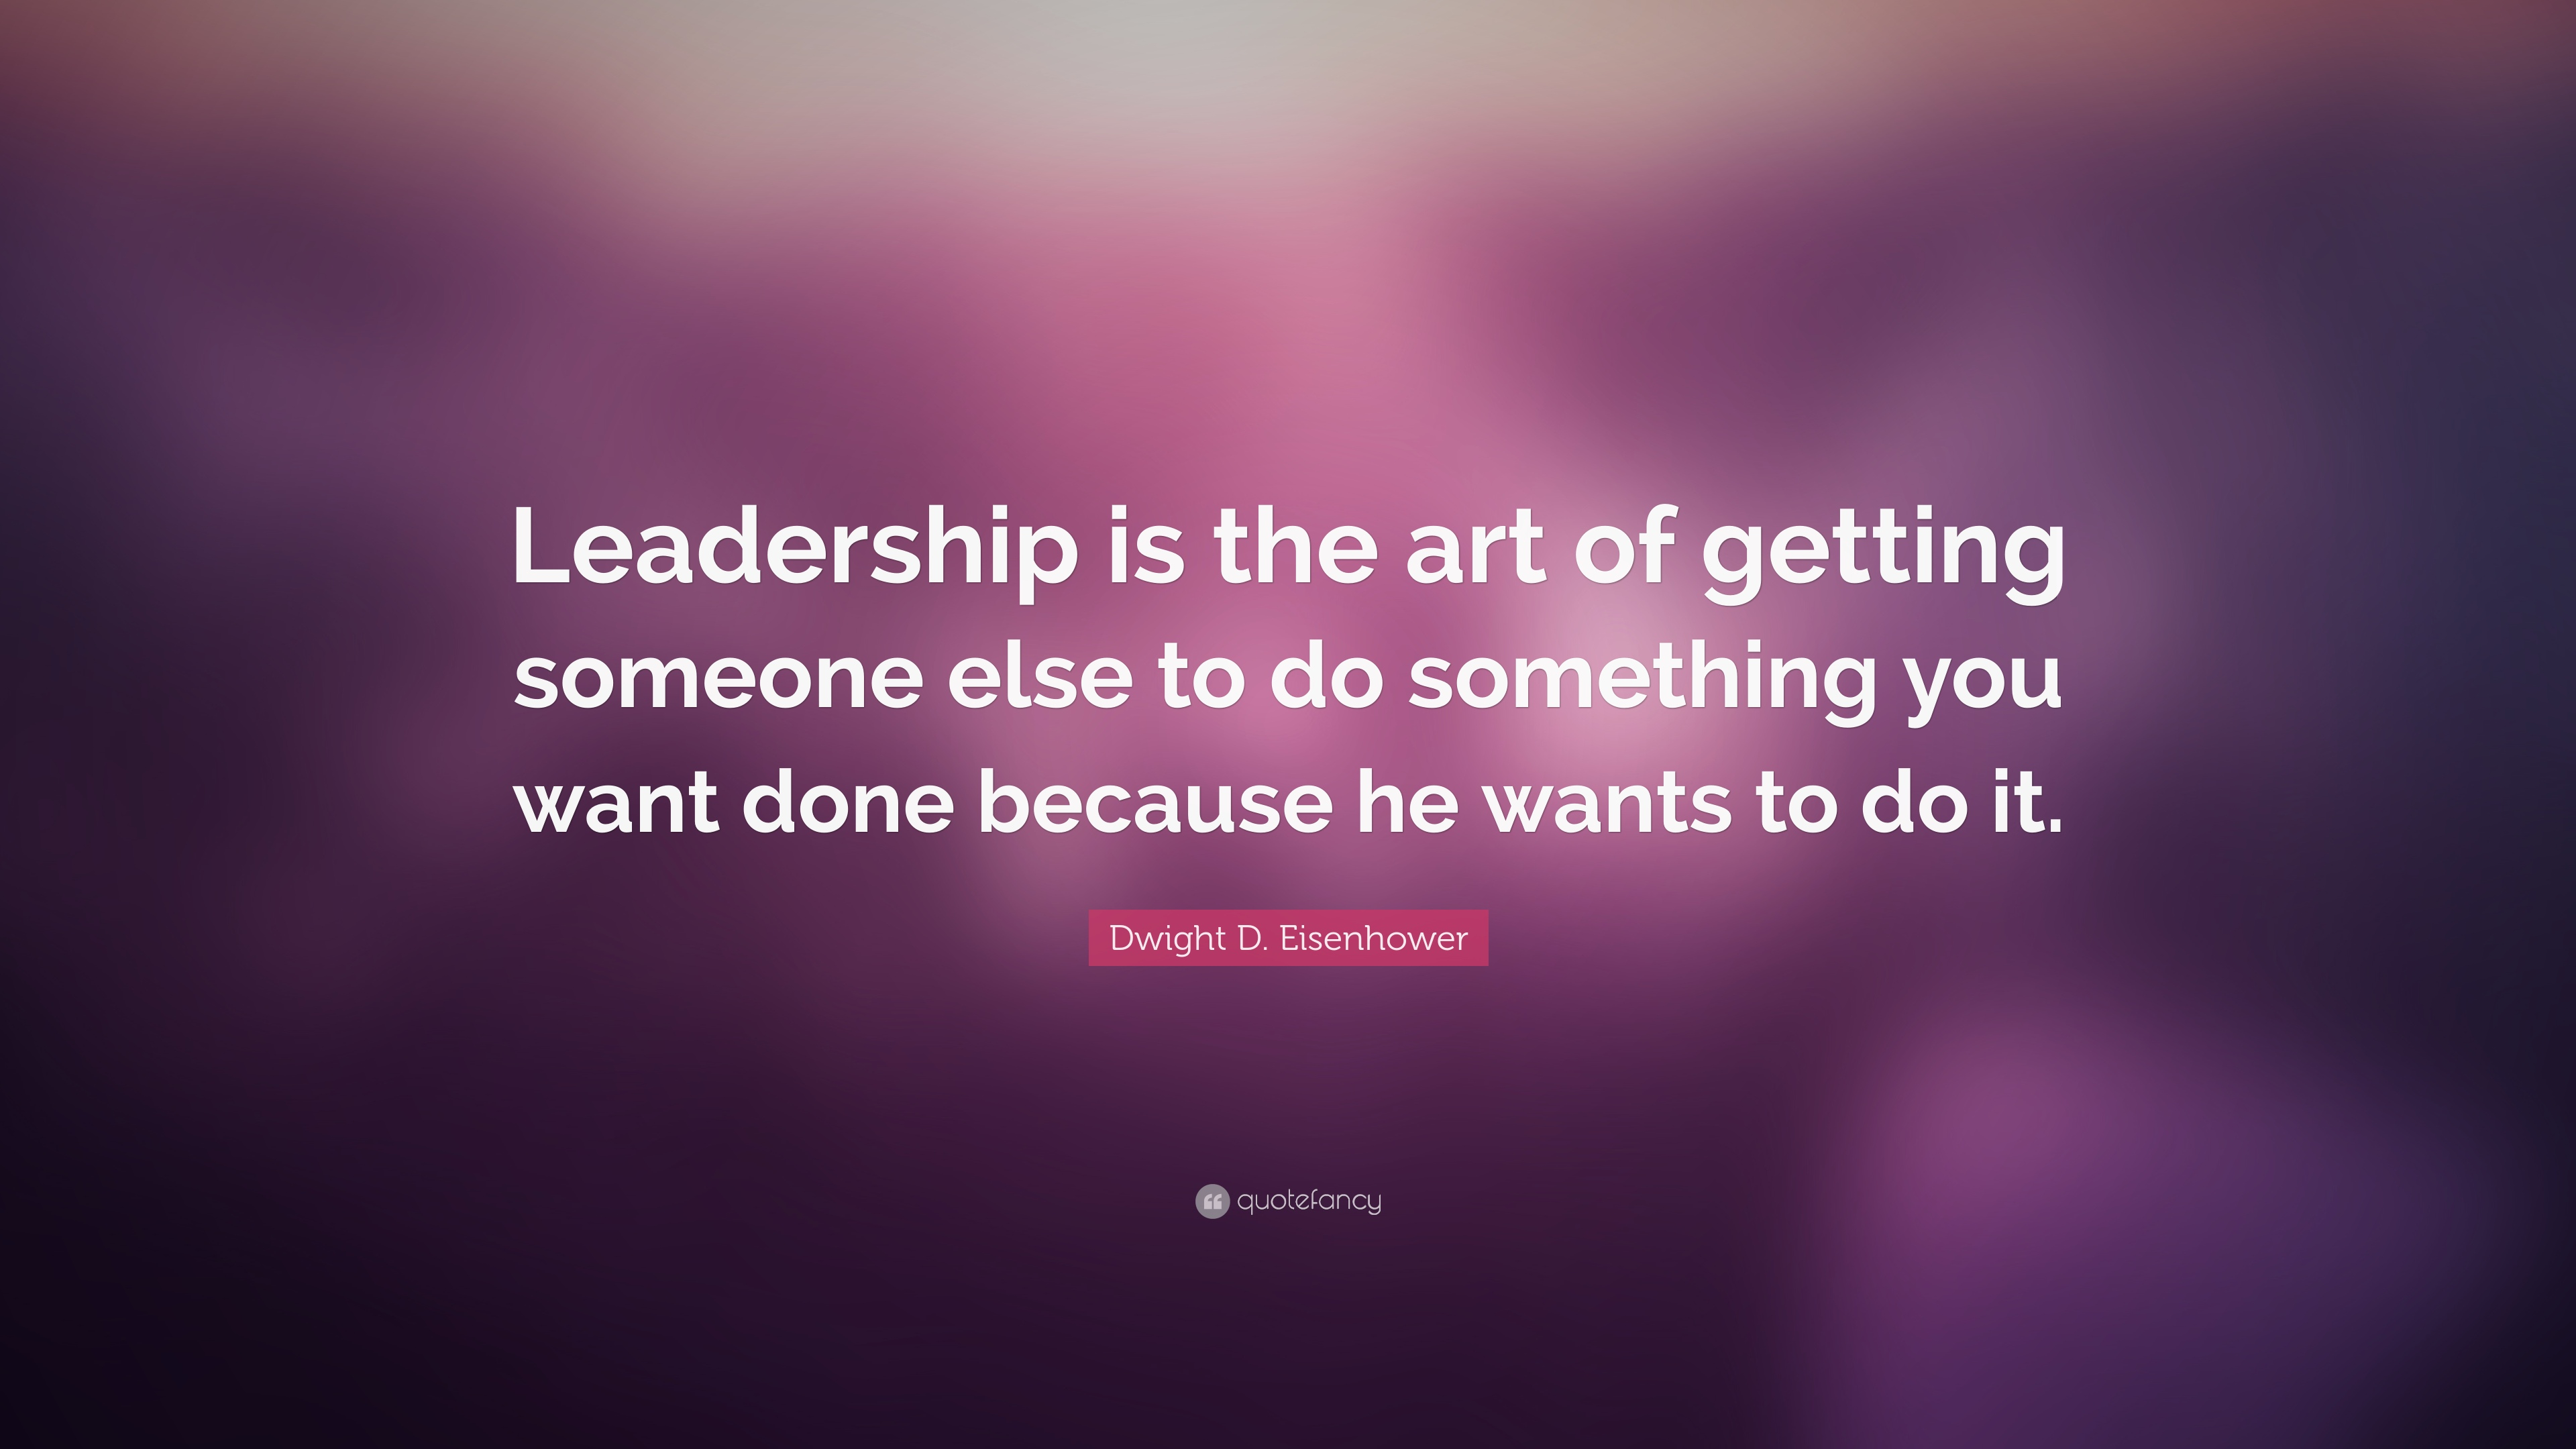 Dwight Eisenhower Quotes | Dwight D Eisenhower Quote Leadership Is The Art Of Getting